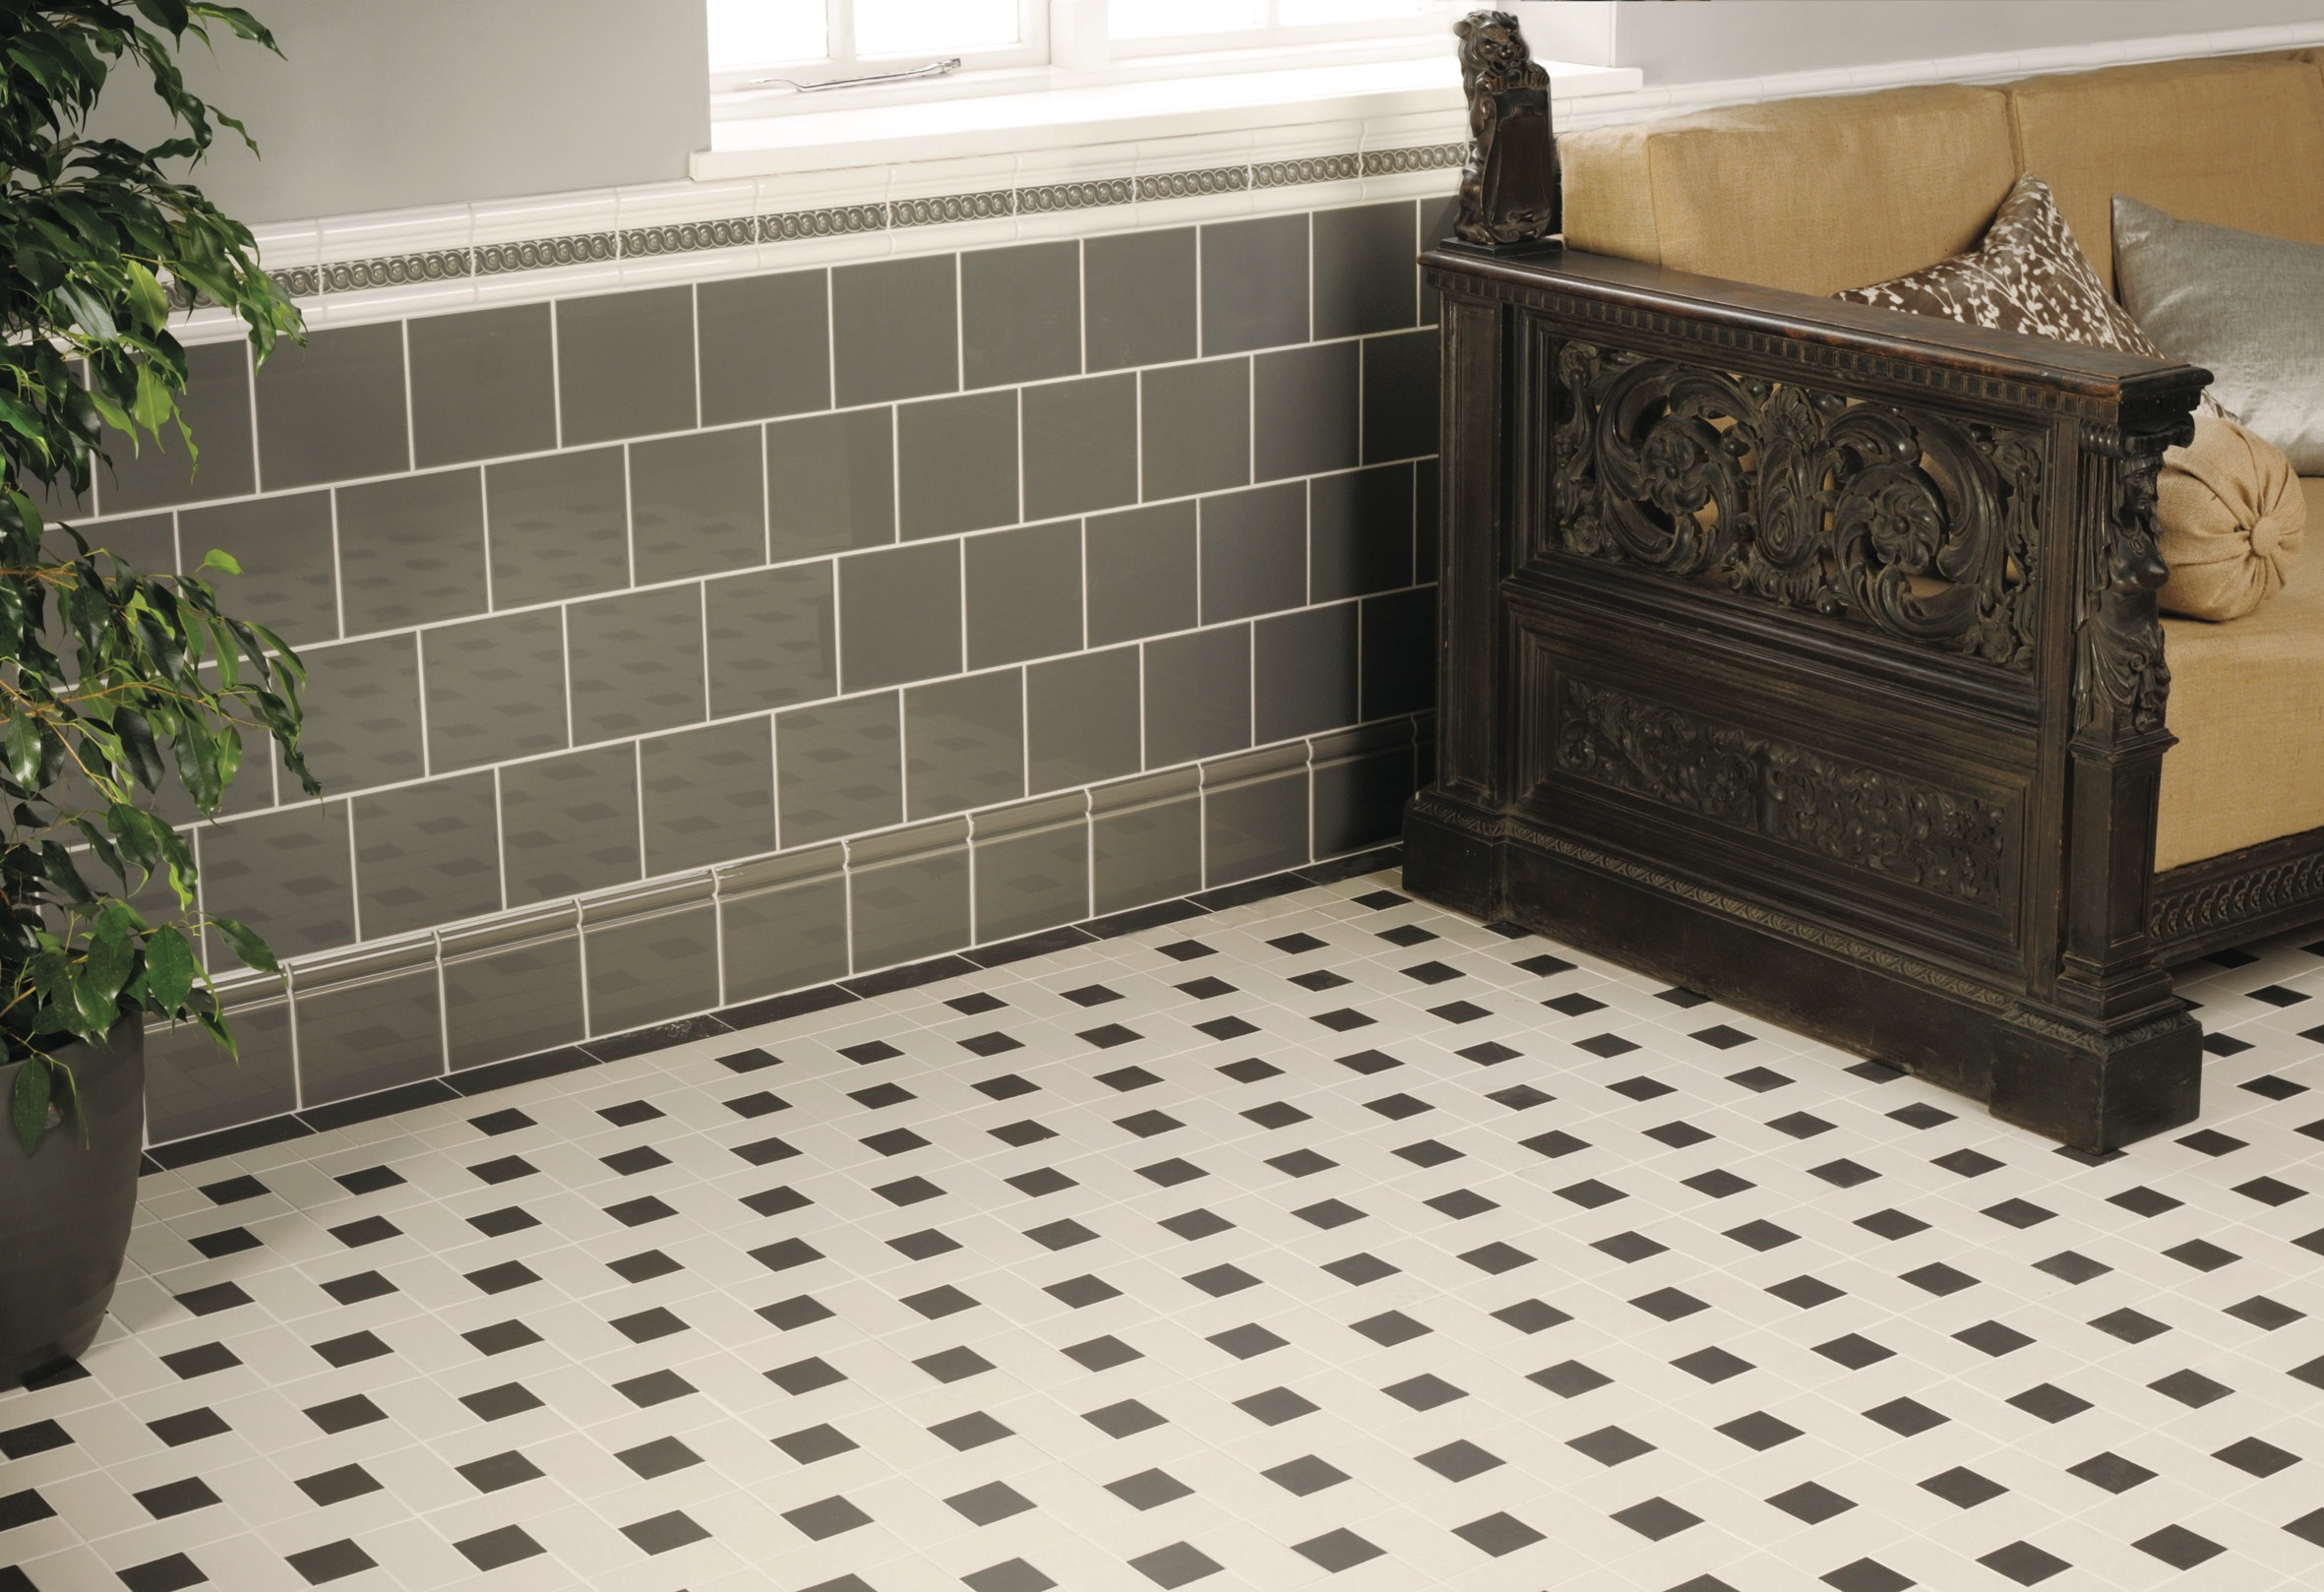 Original Style - VFT - Lincoln pattern and simple border in Black and Dover White with Artworks London Stone on wall.jpg